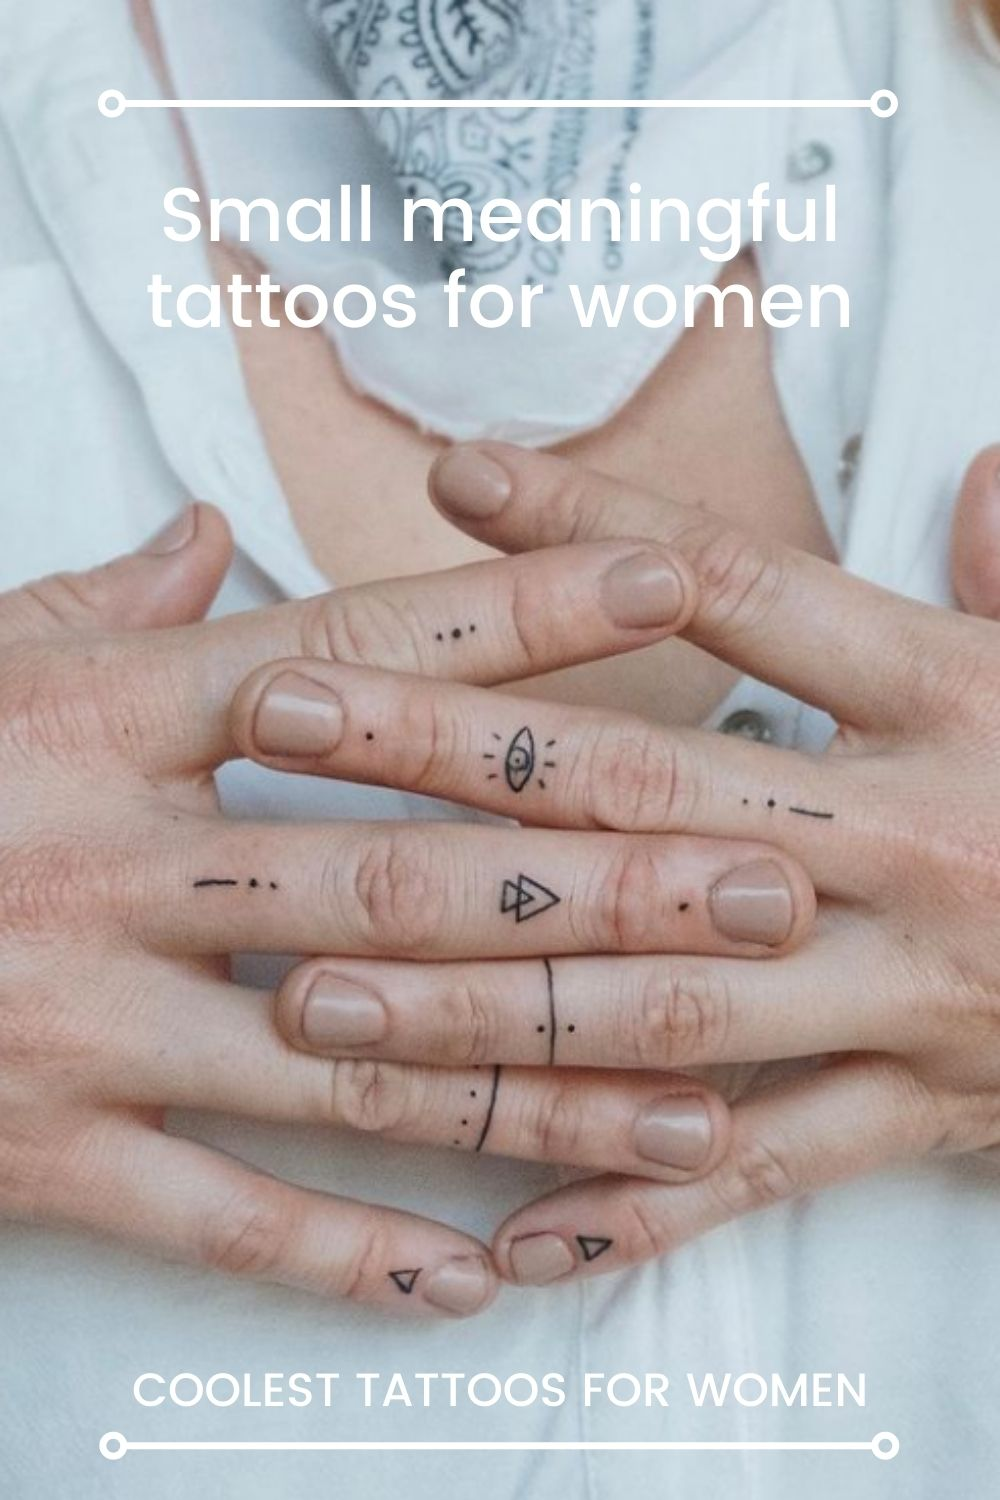 Small meaningful tattoos for women | The coolest tattoo of the year